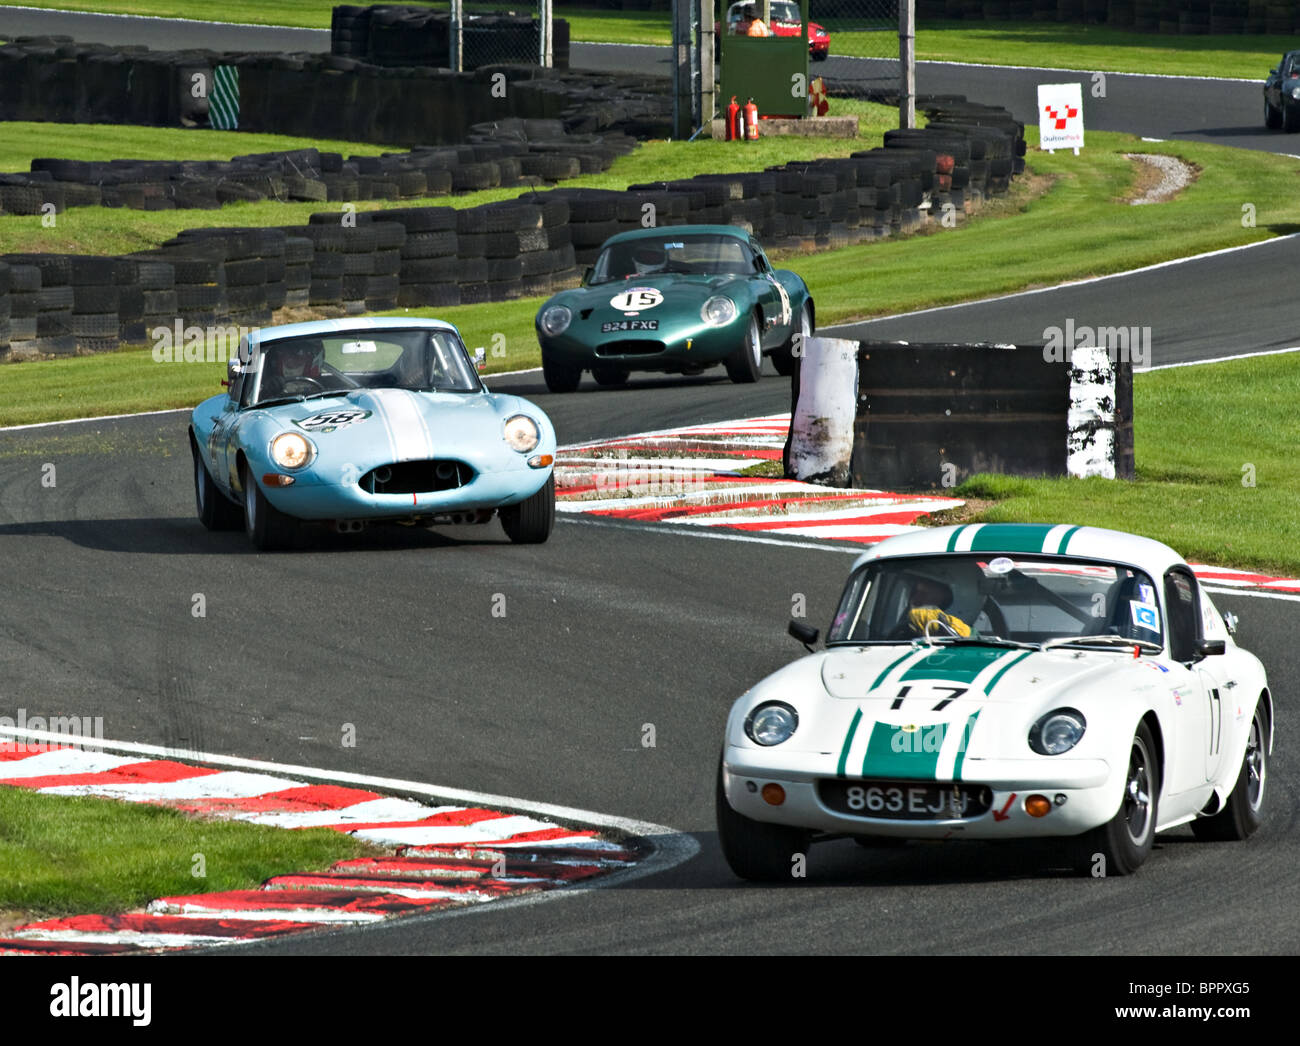 Lotus Elan Followed by Two E Type Jaguar Race Cars Negotiate ...